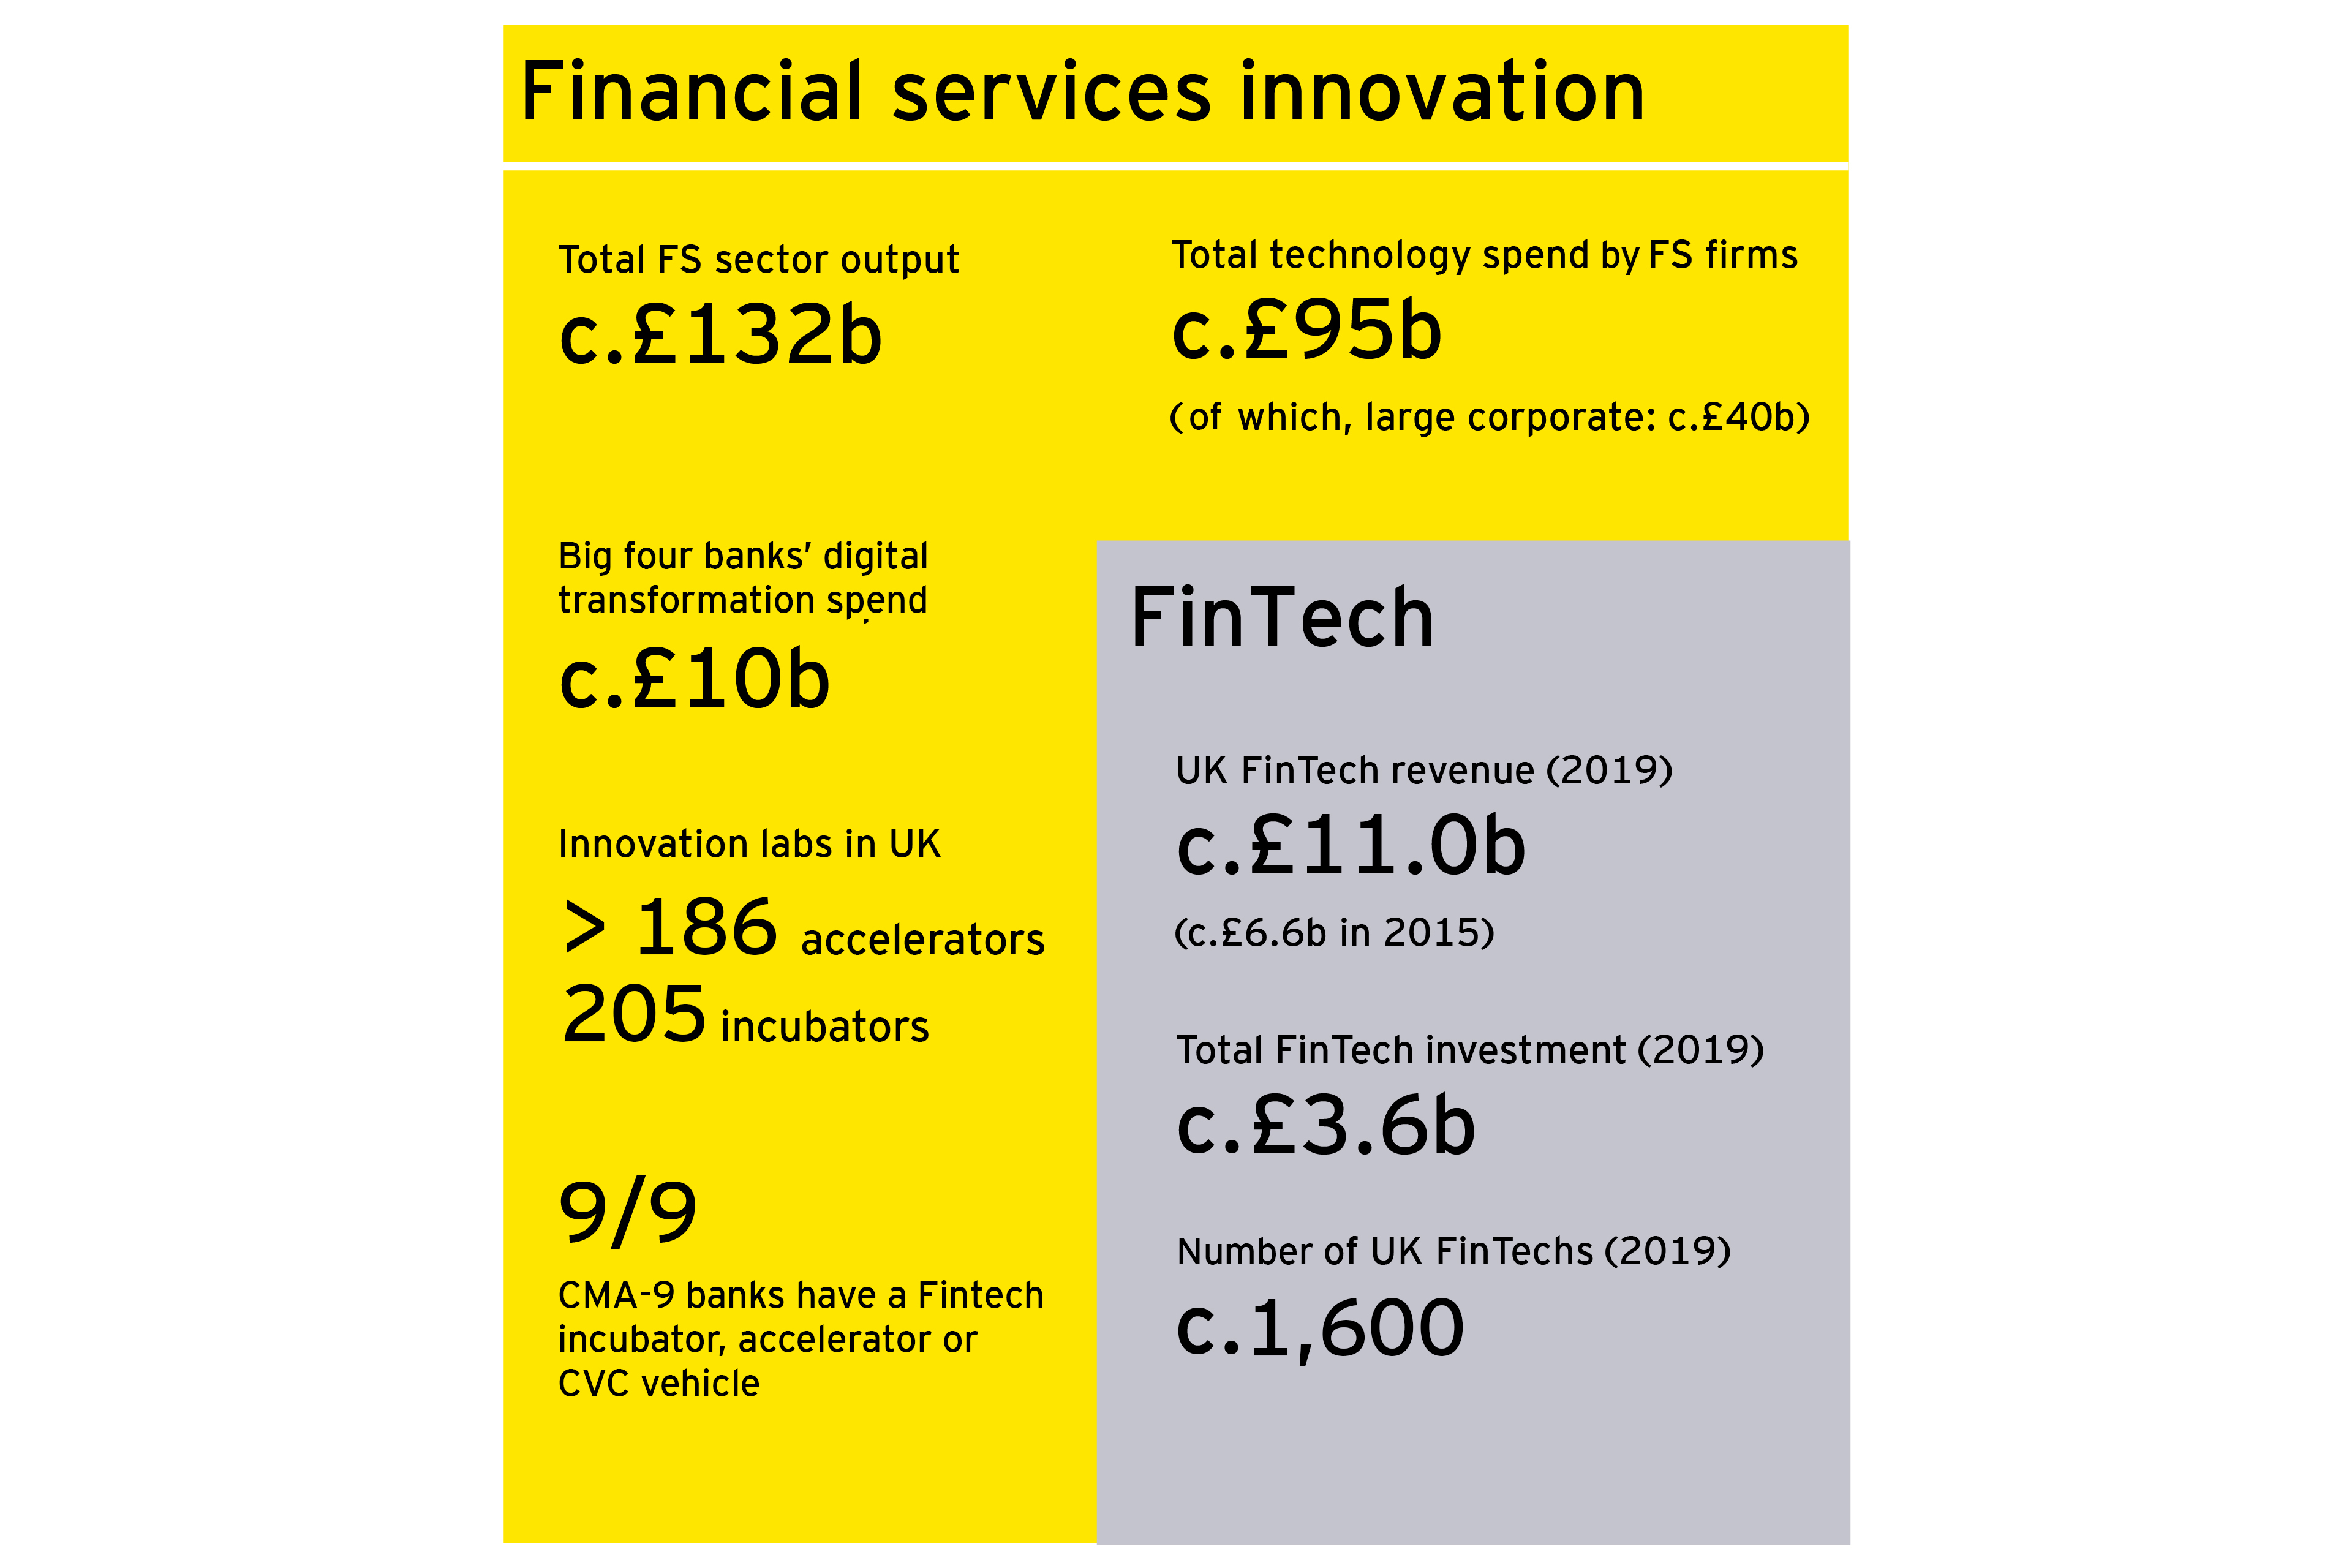 Financial services innovation